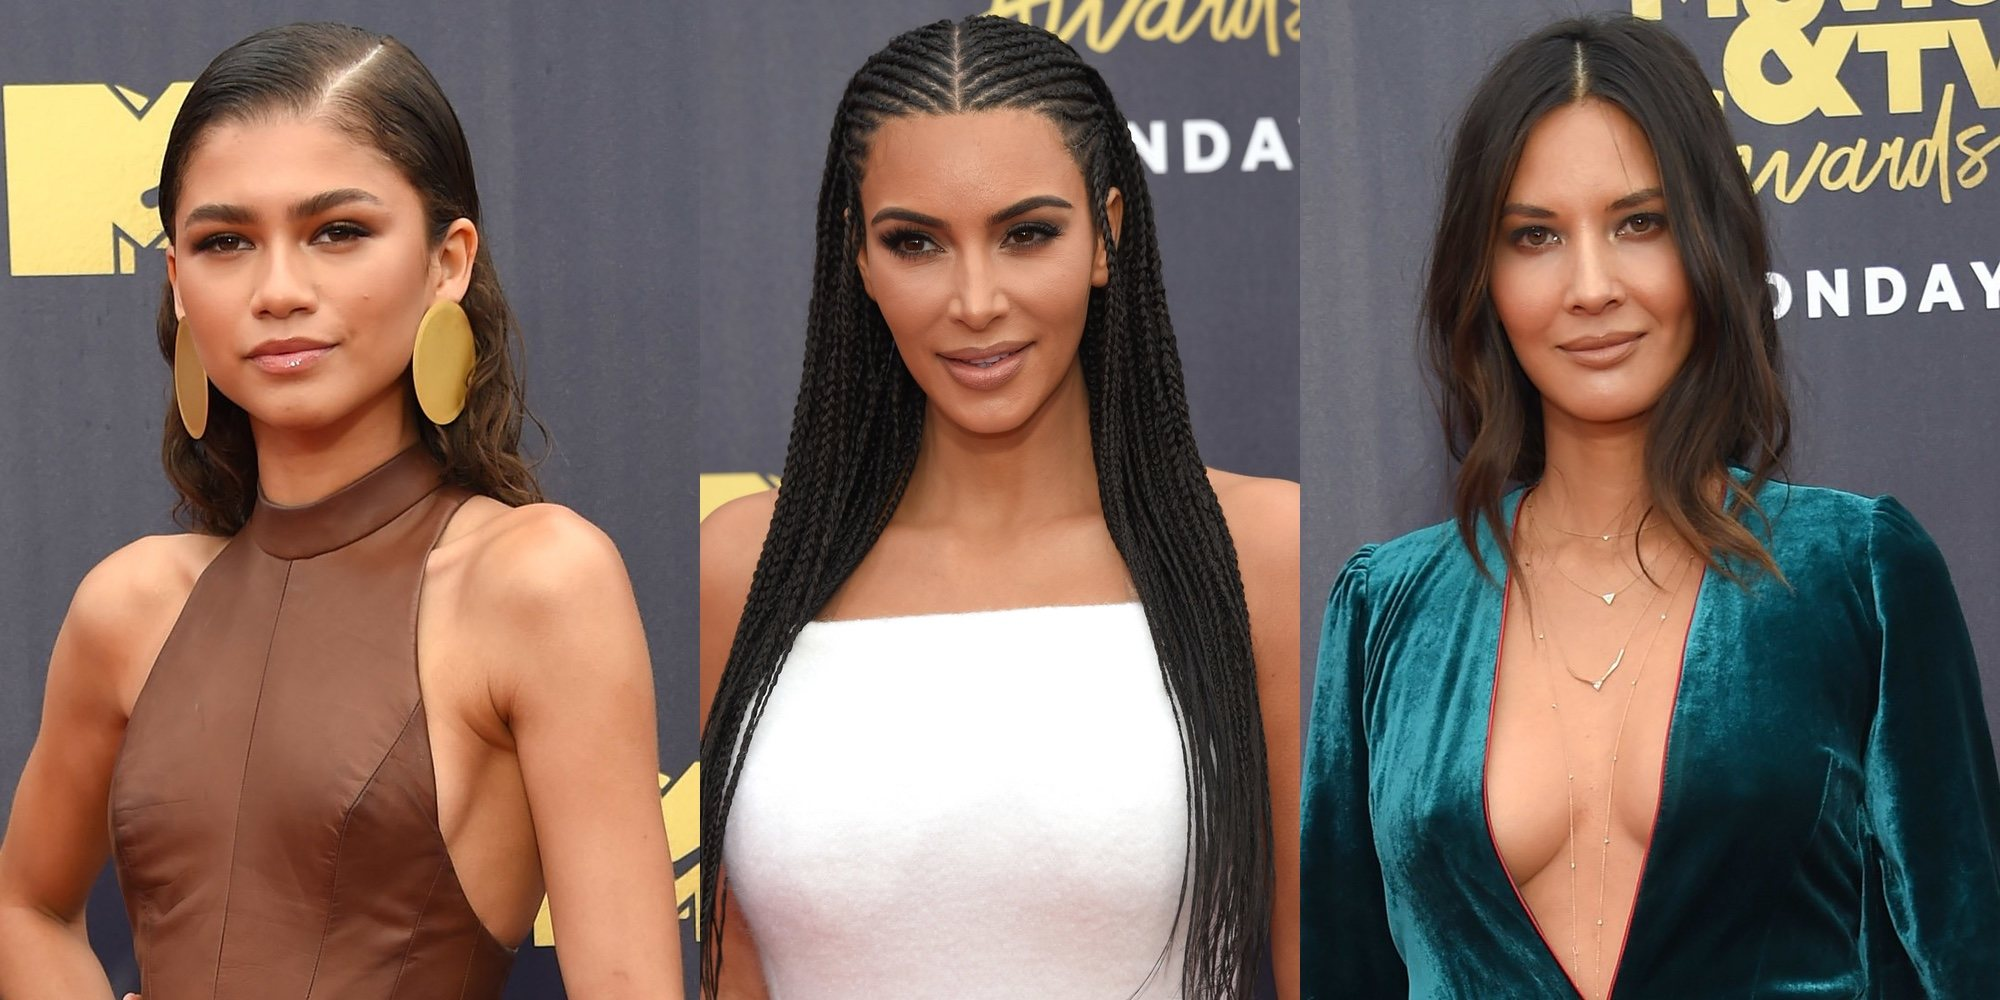 Kim Kardashian o Zendaya brillan en la alfombra roja de los MTV Movie & TV Awards 2018